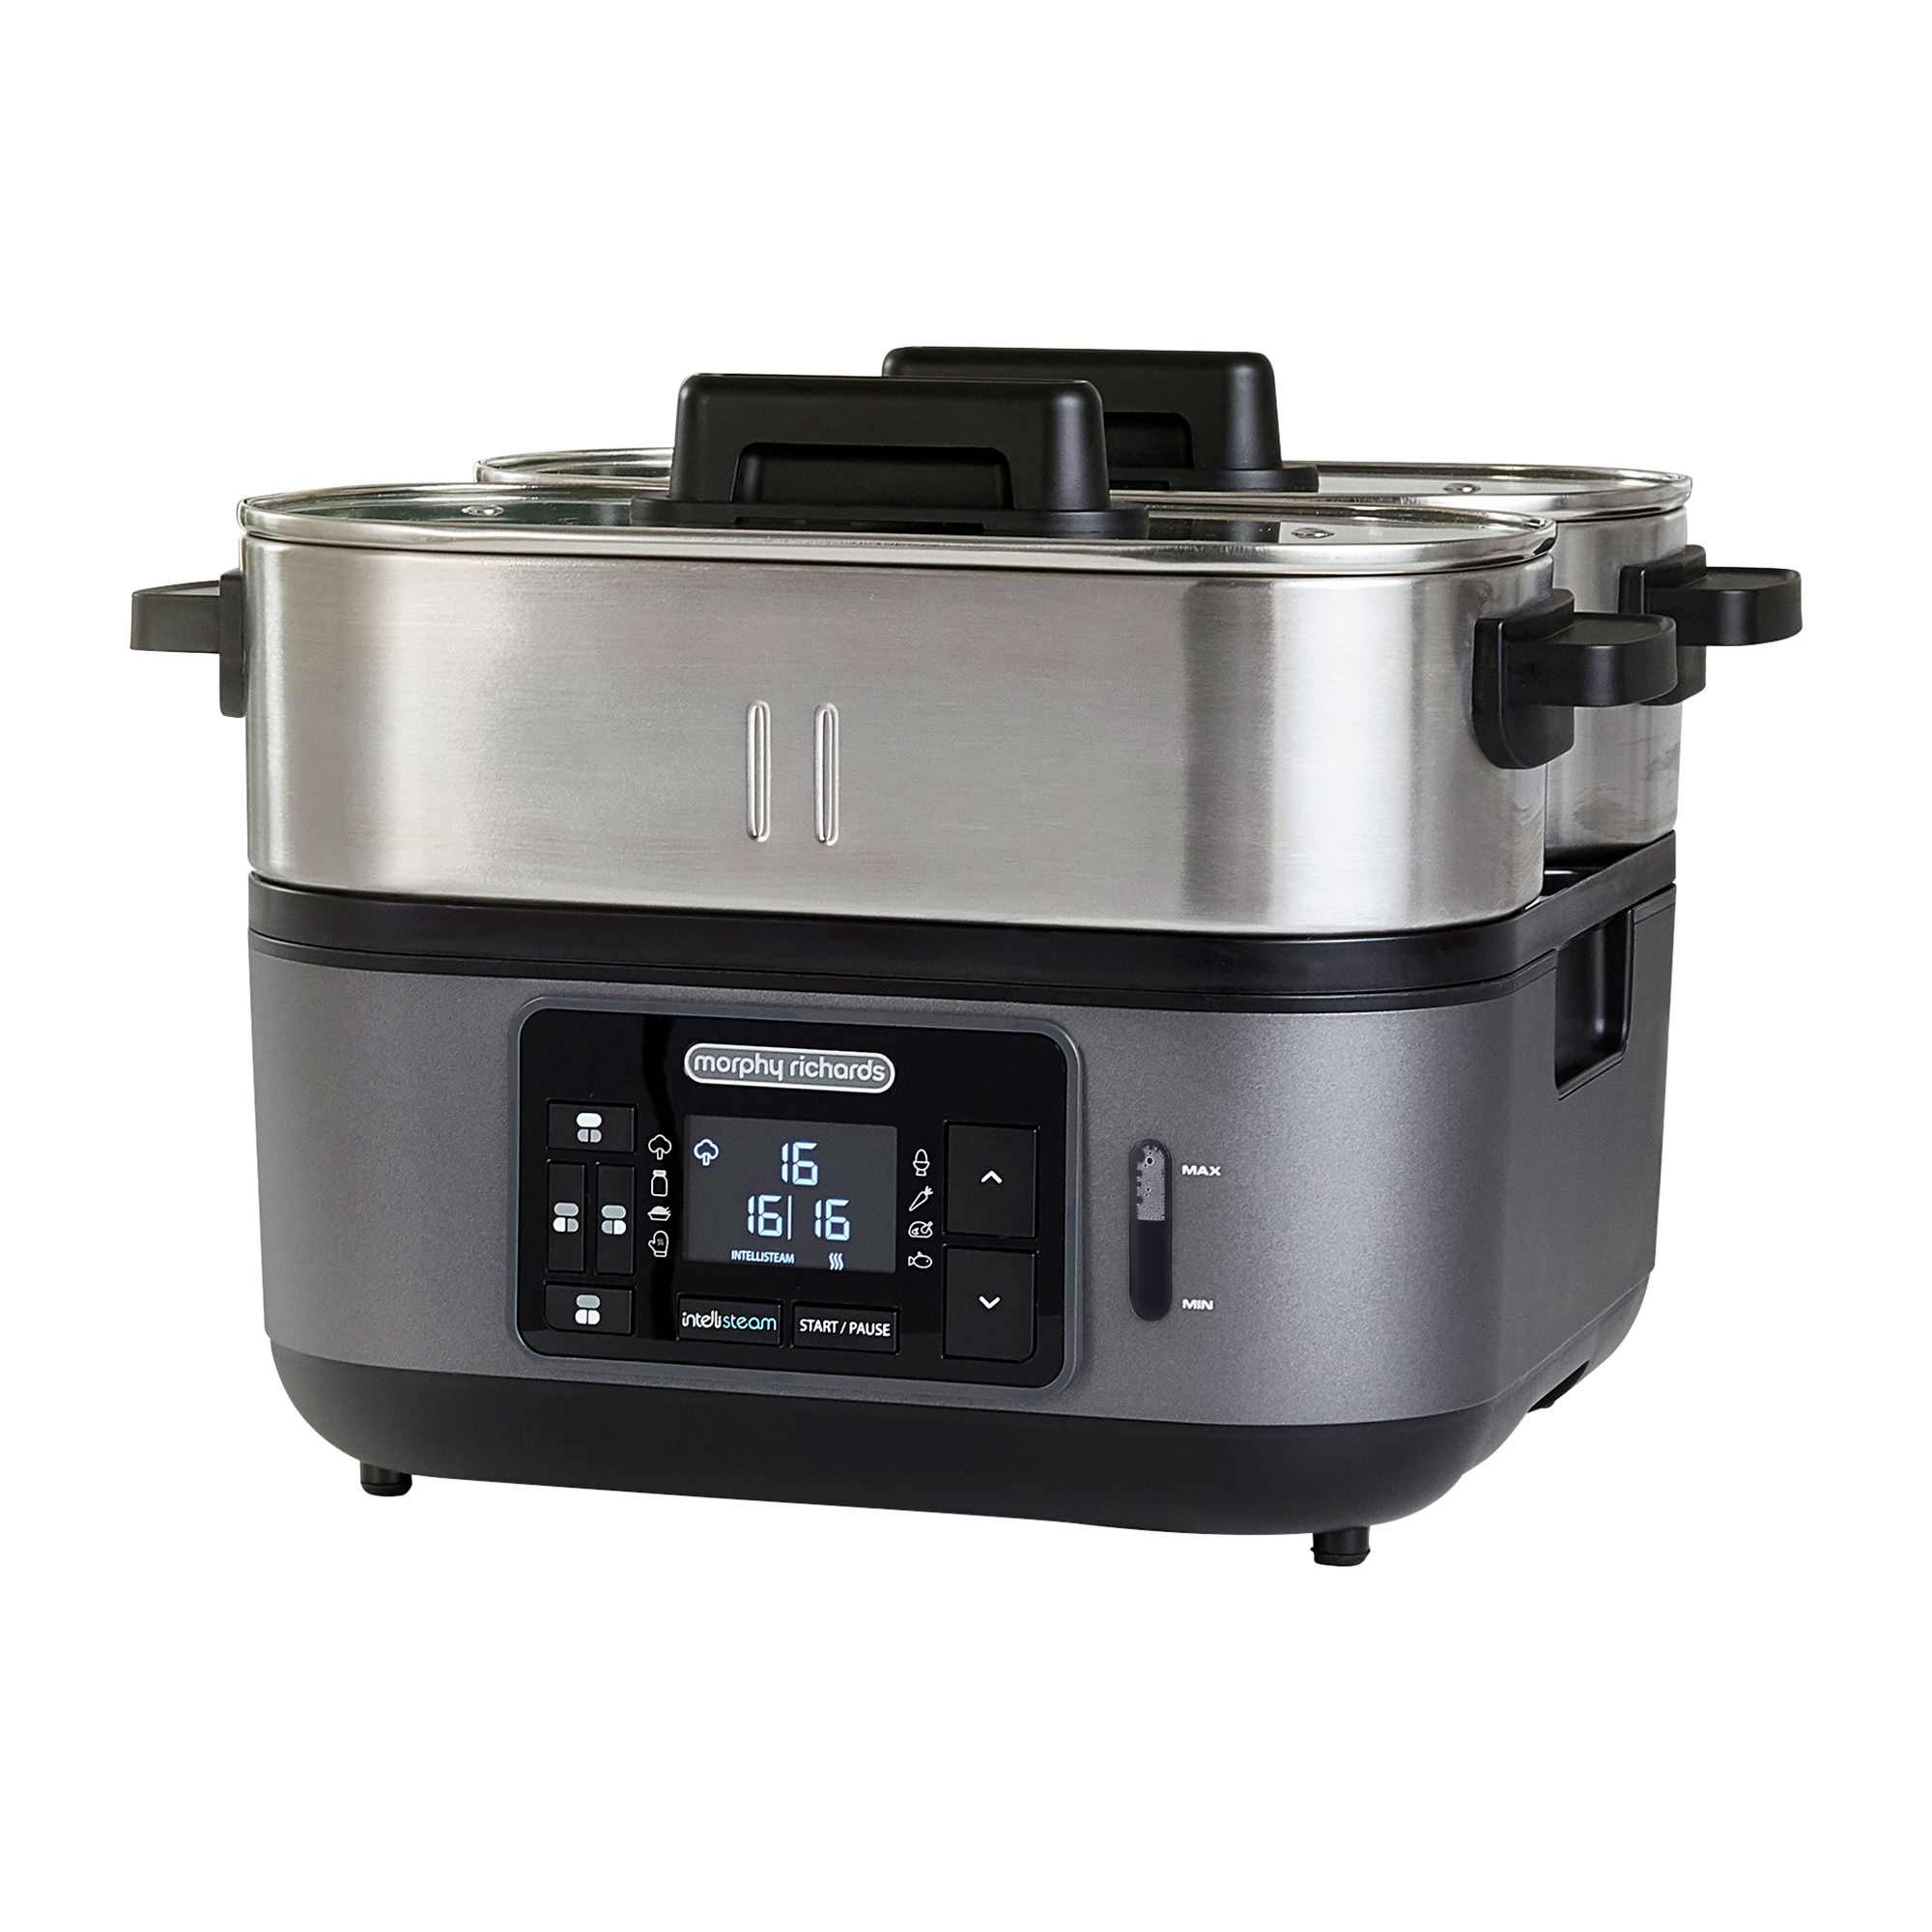 Morphy Richards Intellisteam Electric Food Steamer